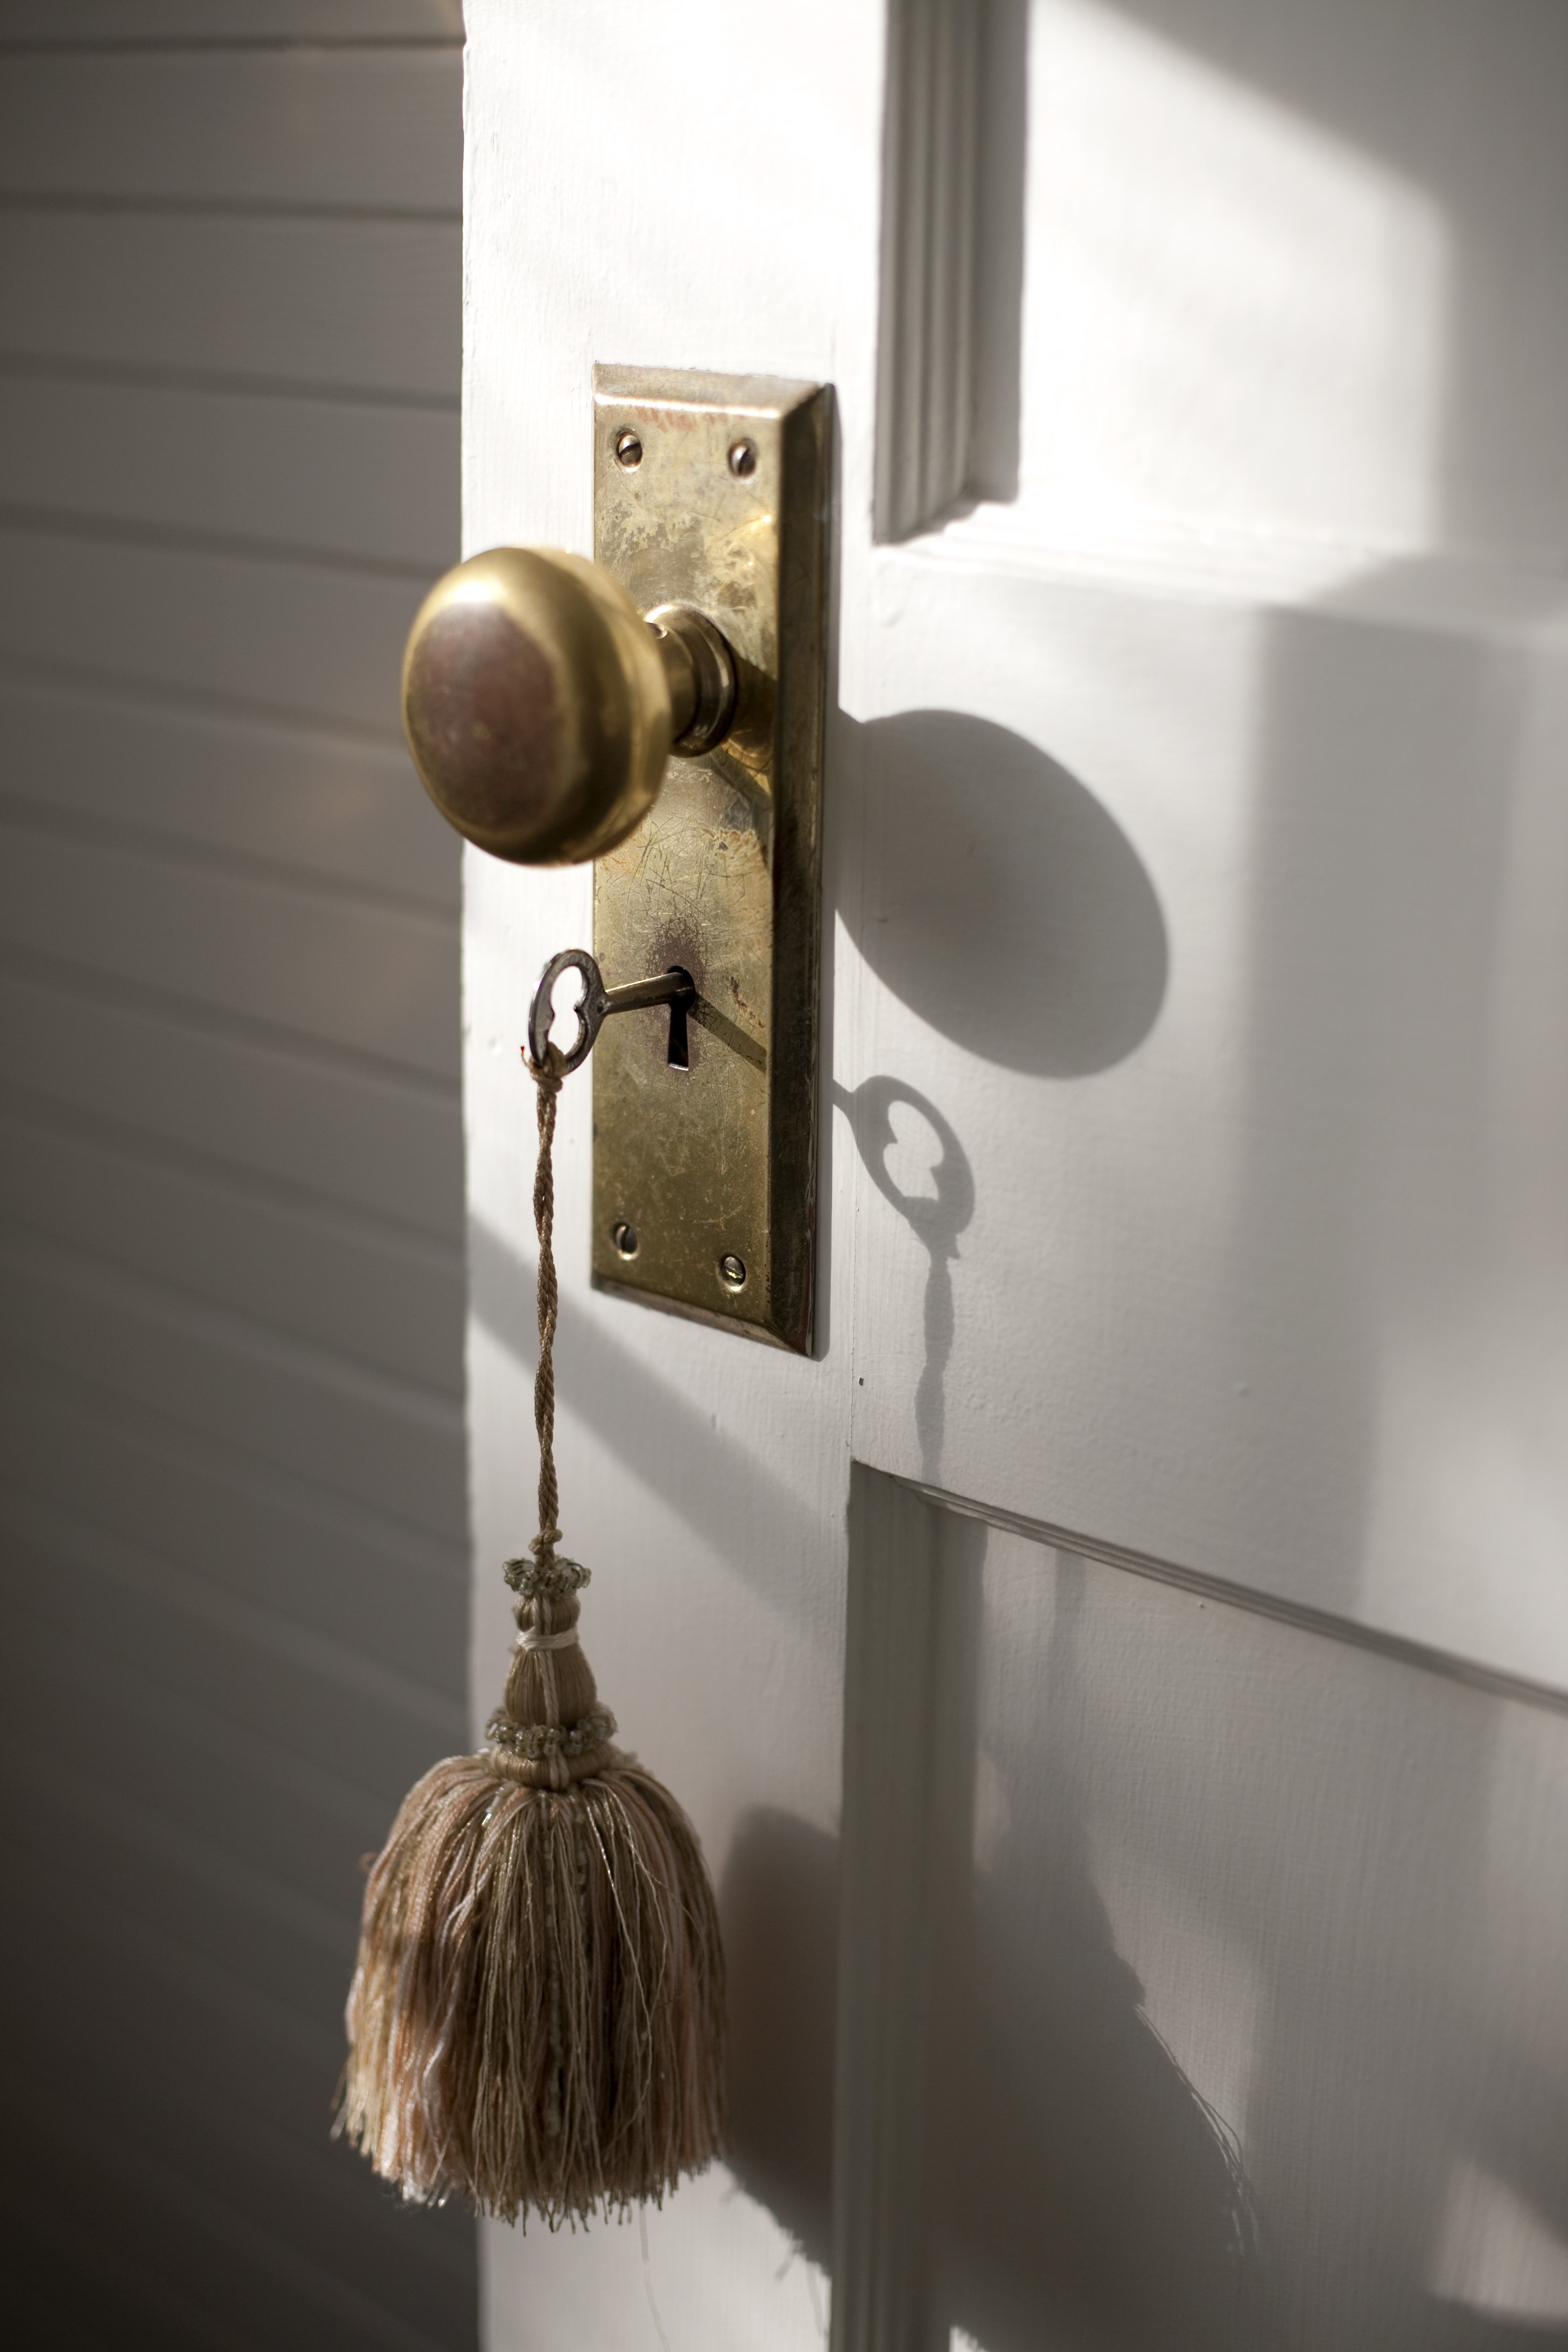 Close of door knob and key with tassel